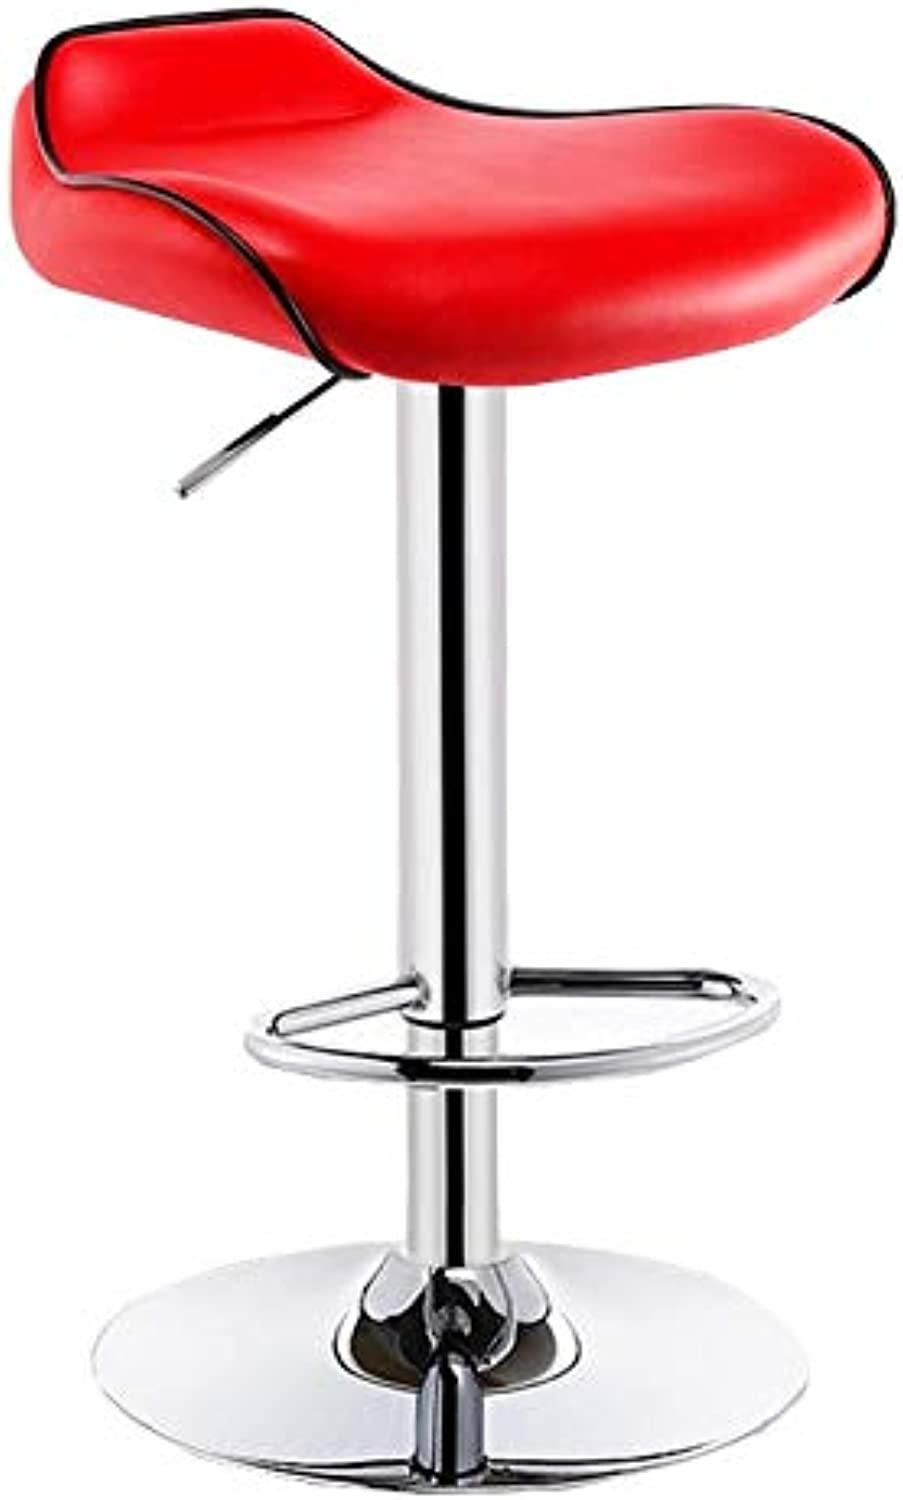 QIDI Bar Chair Adjustable Height 360° redation High Stool Leather Metal SGS Gas Rod, Household Bar (Size  41.5 X 41.5 X 62-82cm) (color   Red)